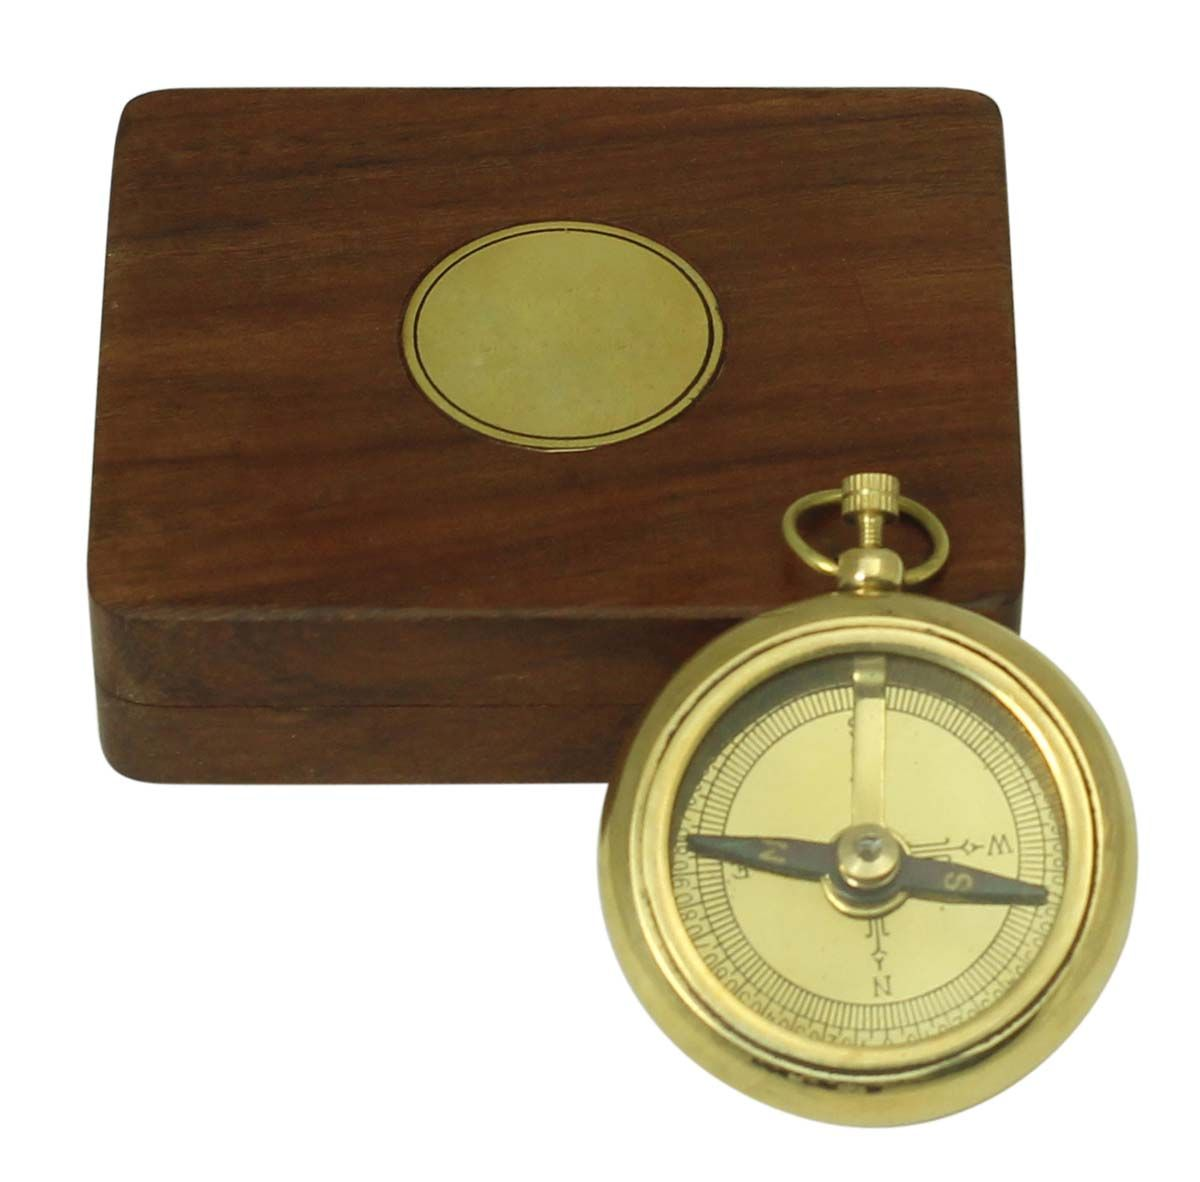 Brass Sundial Compass Solid Brass Pocket Sundial West London With Wooden Box Amazon Co Uk Kitchen Home Wooden Boxes Handcrafted Wooden Box Sundial